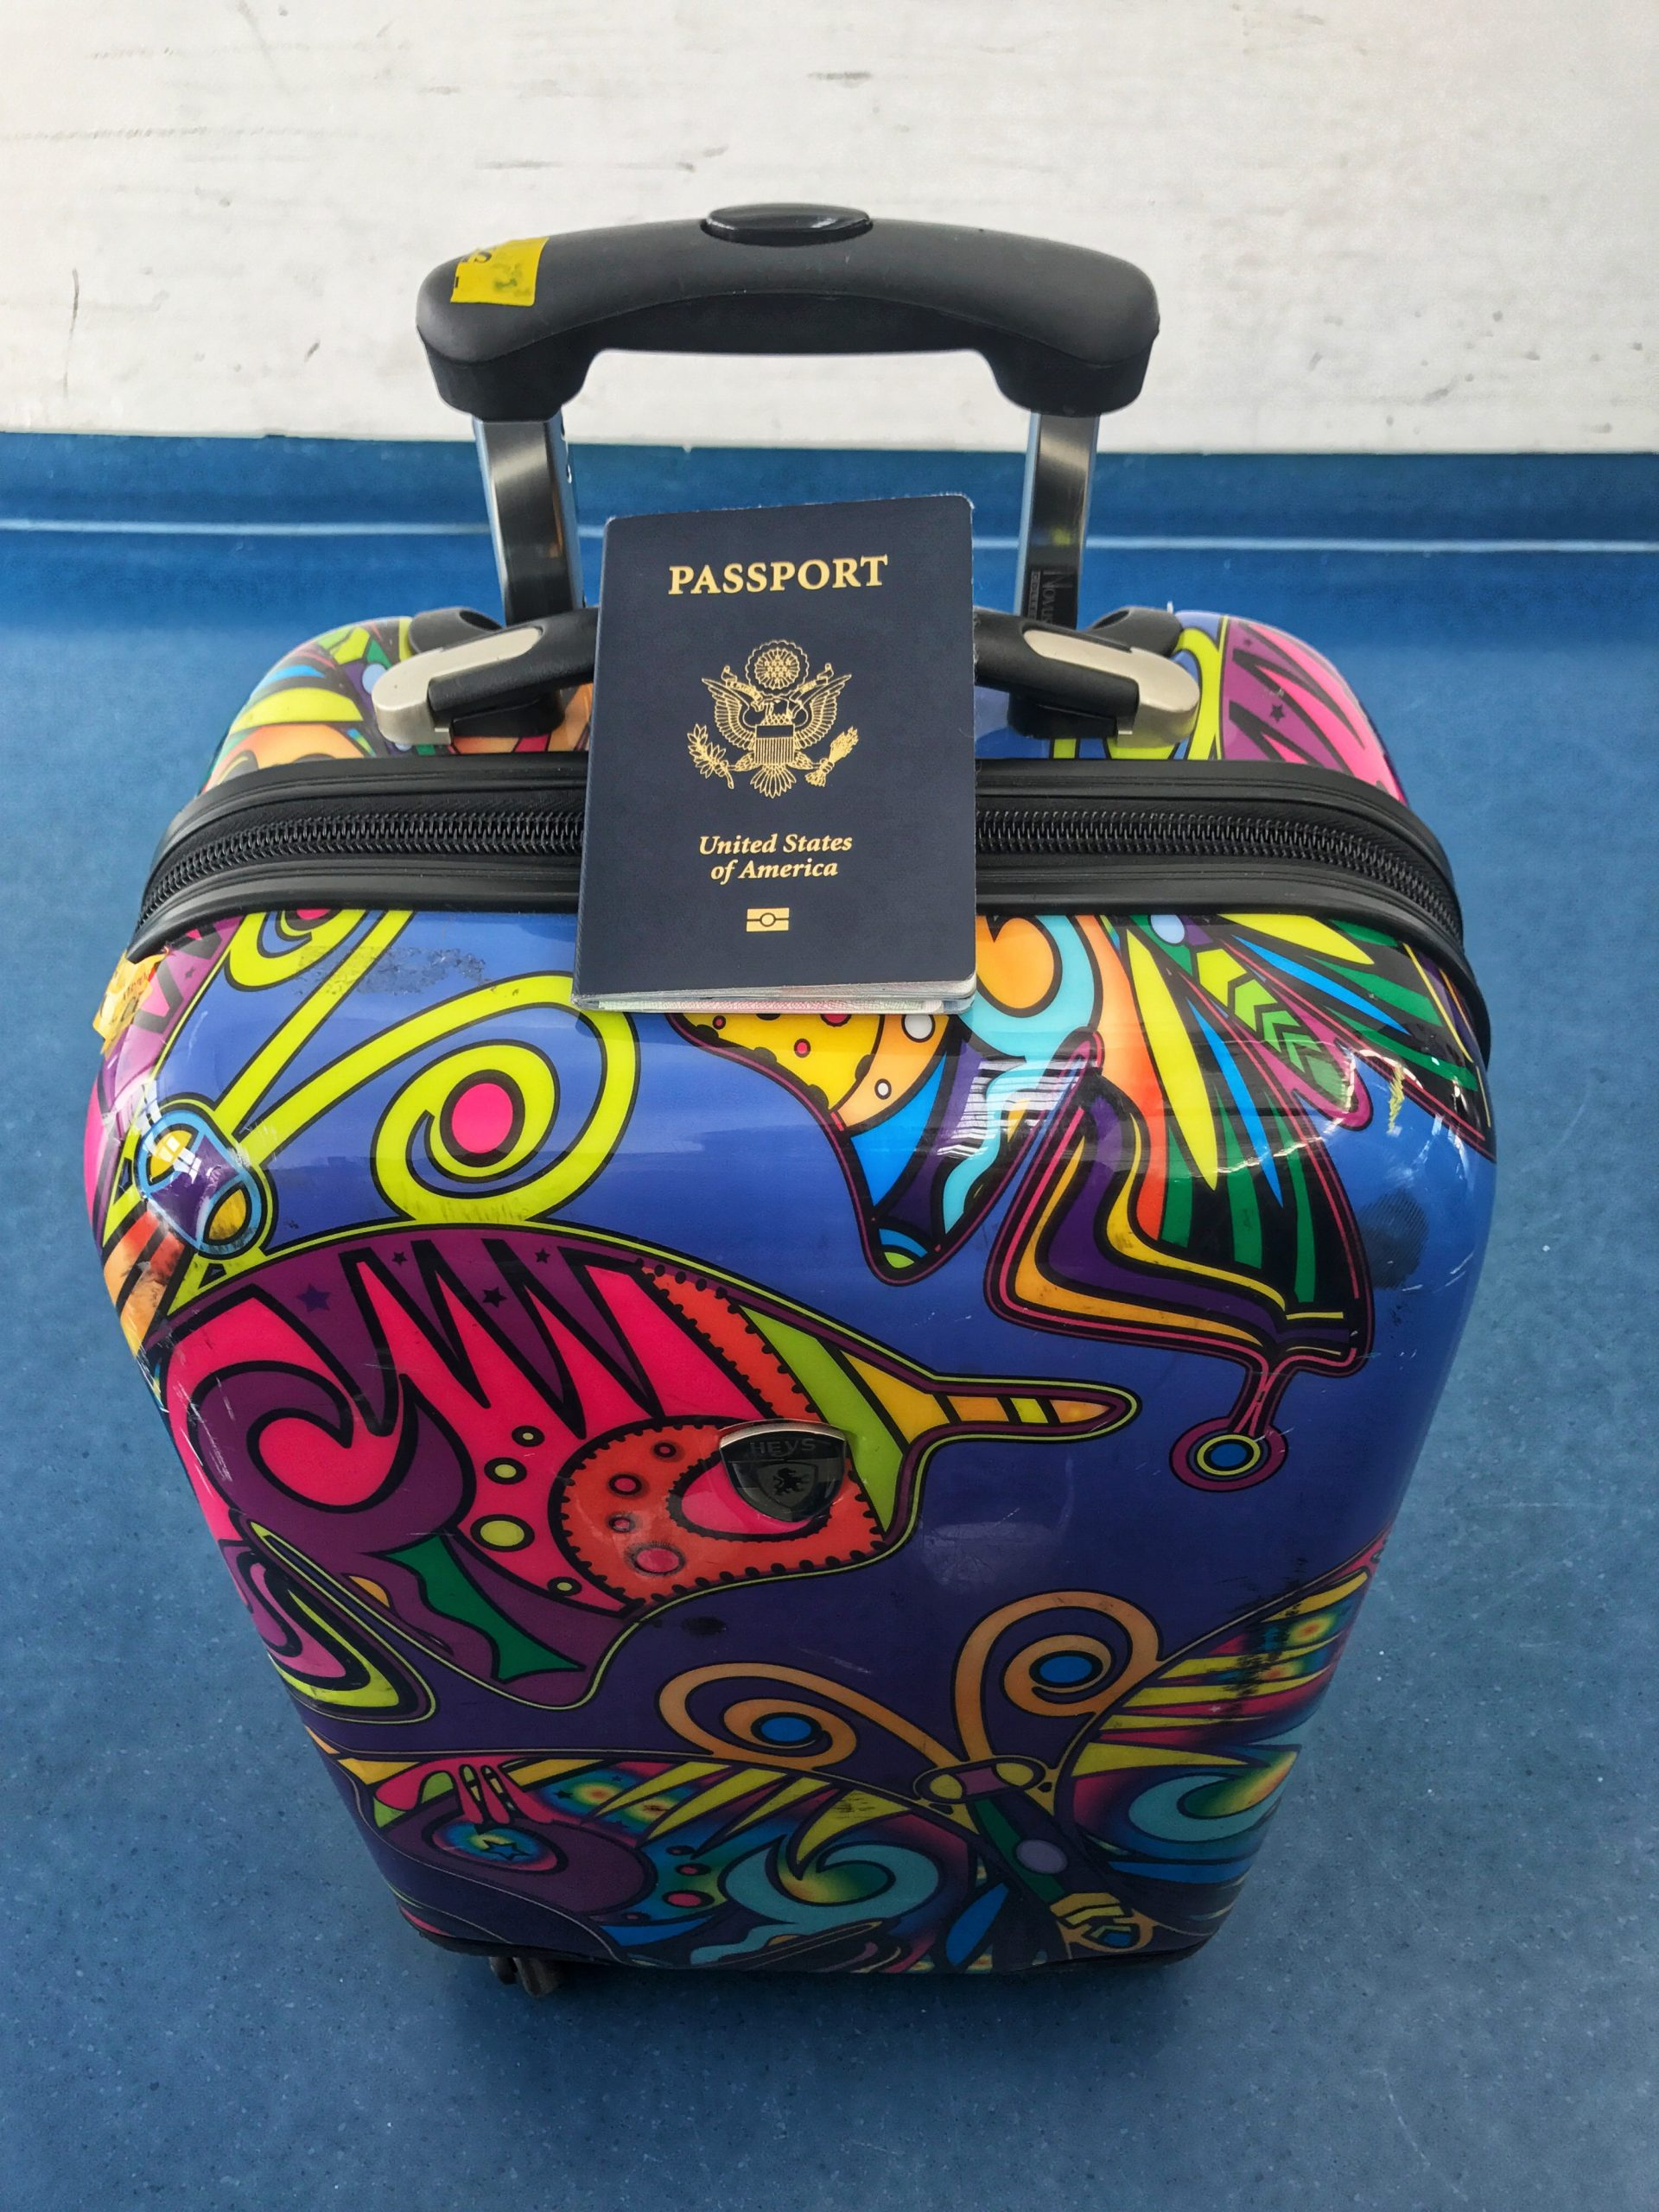 Colorful carry-on suitcase with passport on top of it